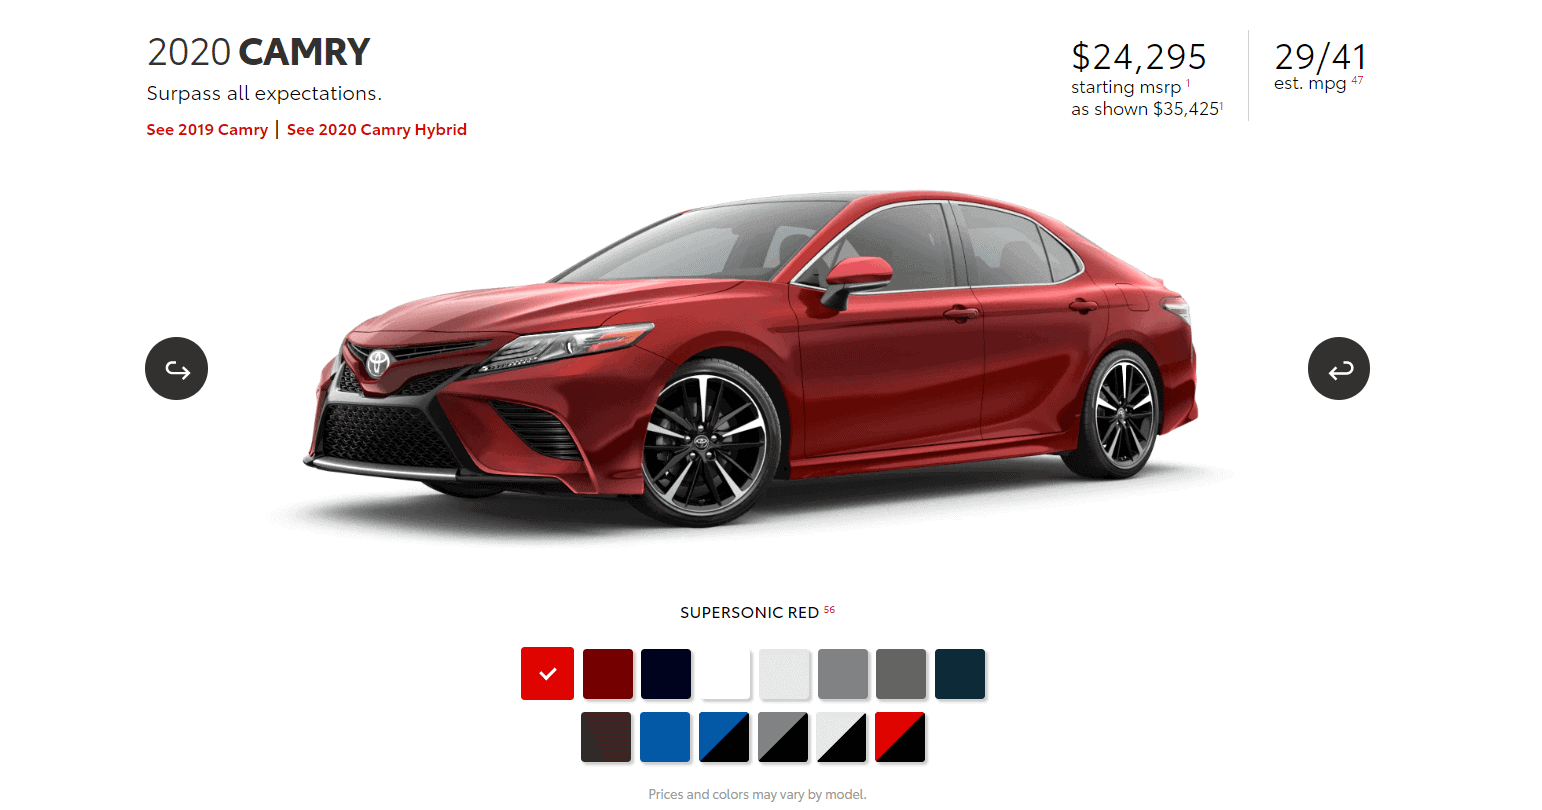 Best gas mileage cars: 2020 Camry